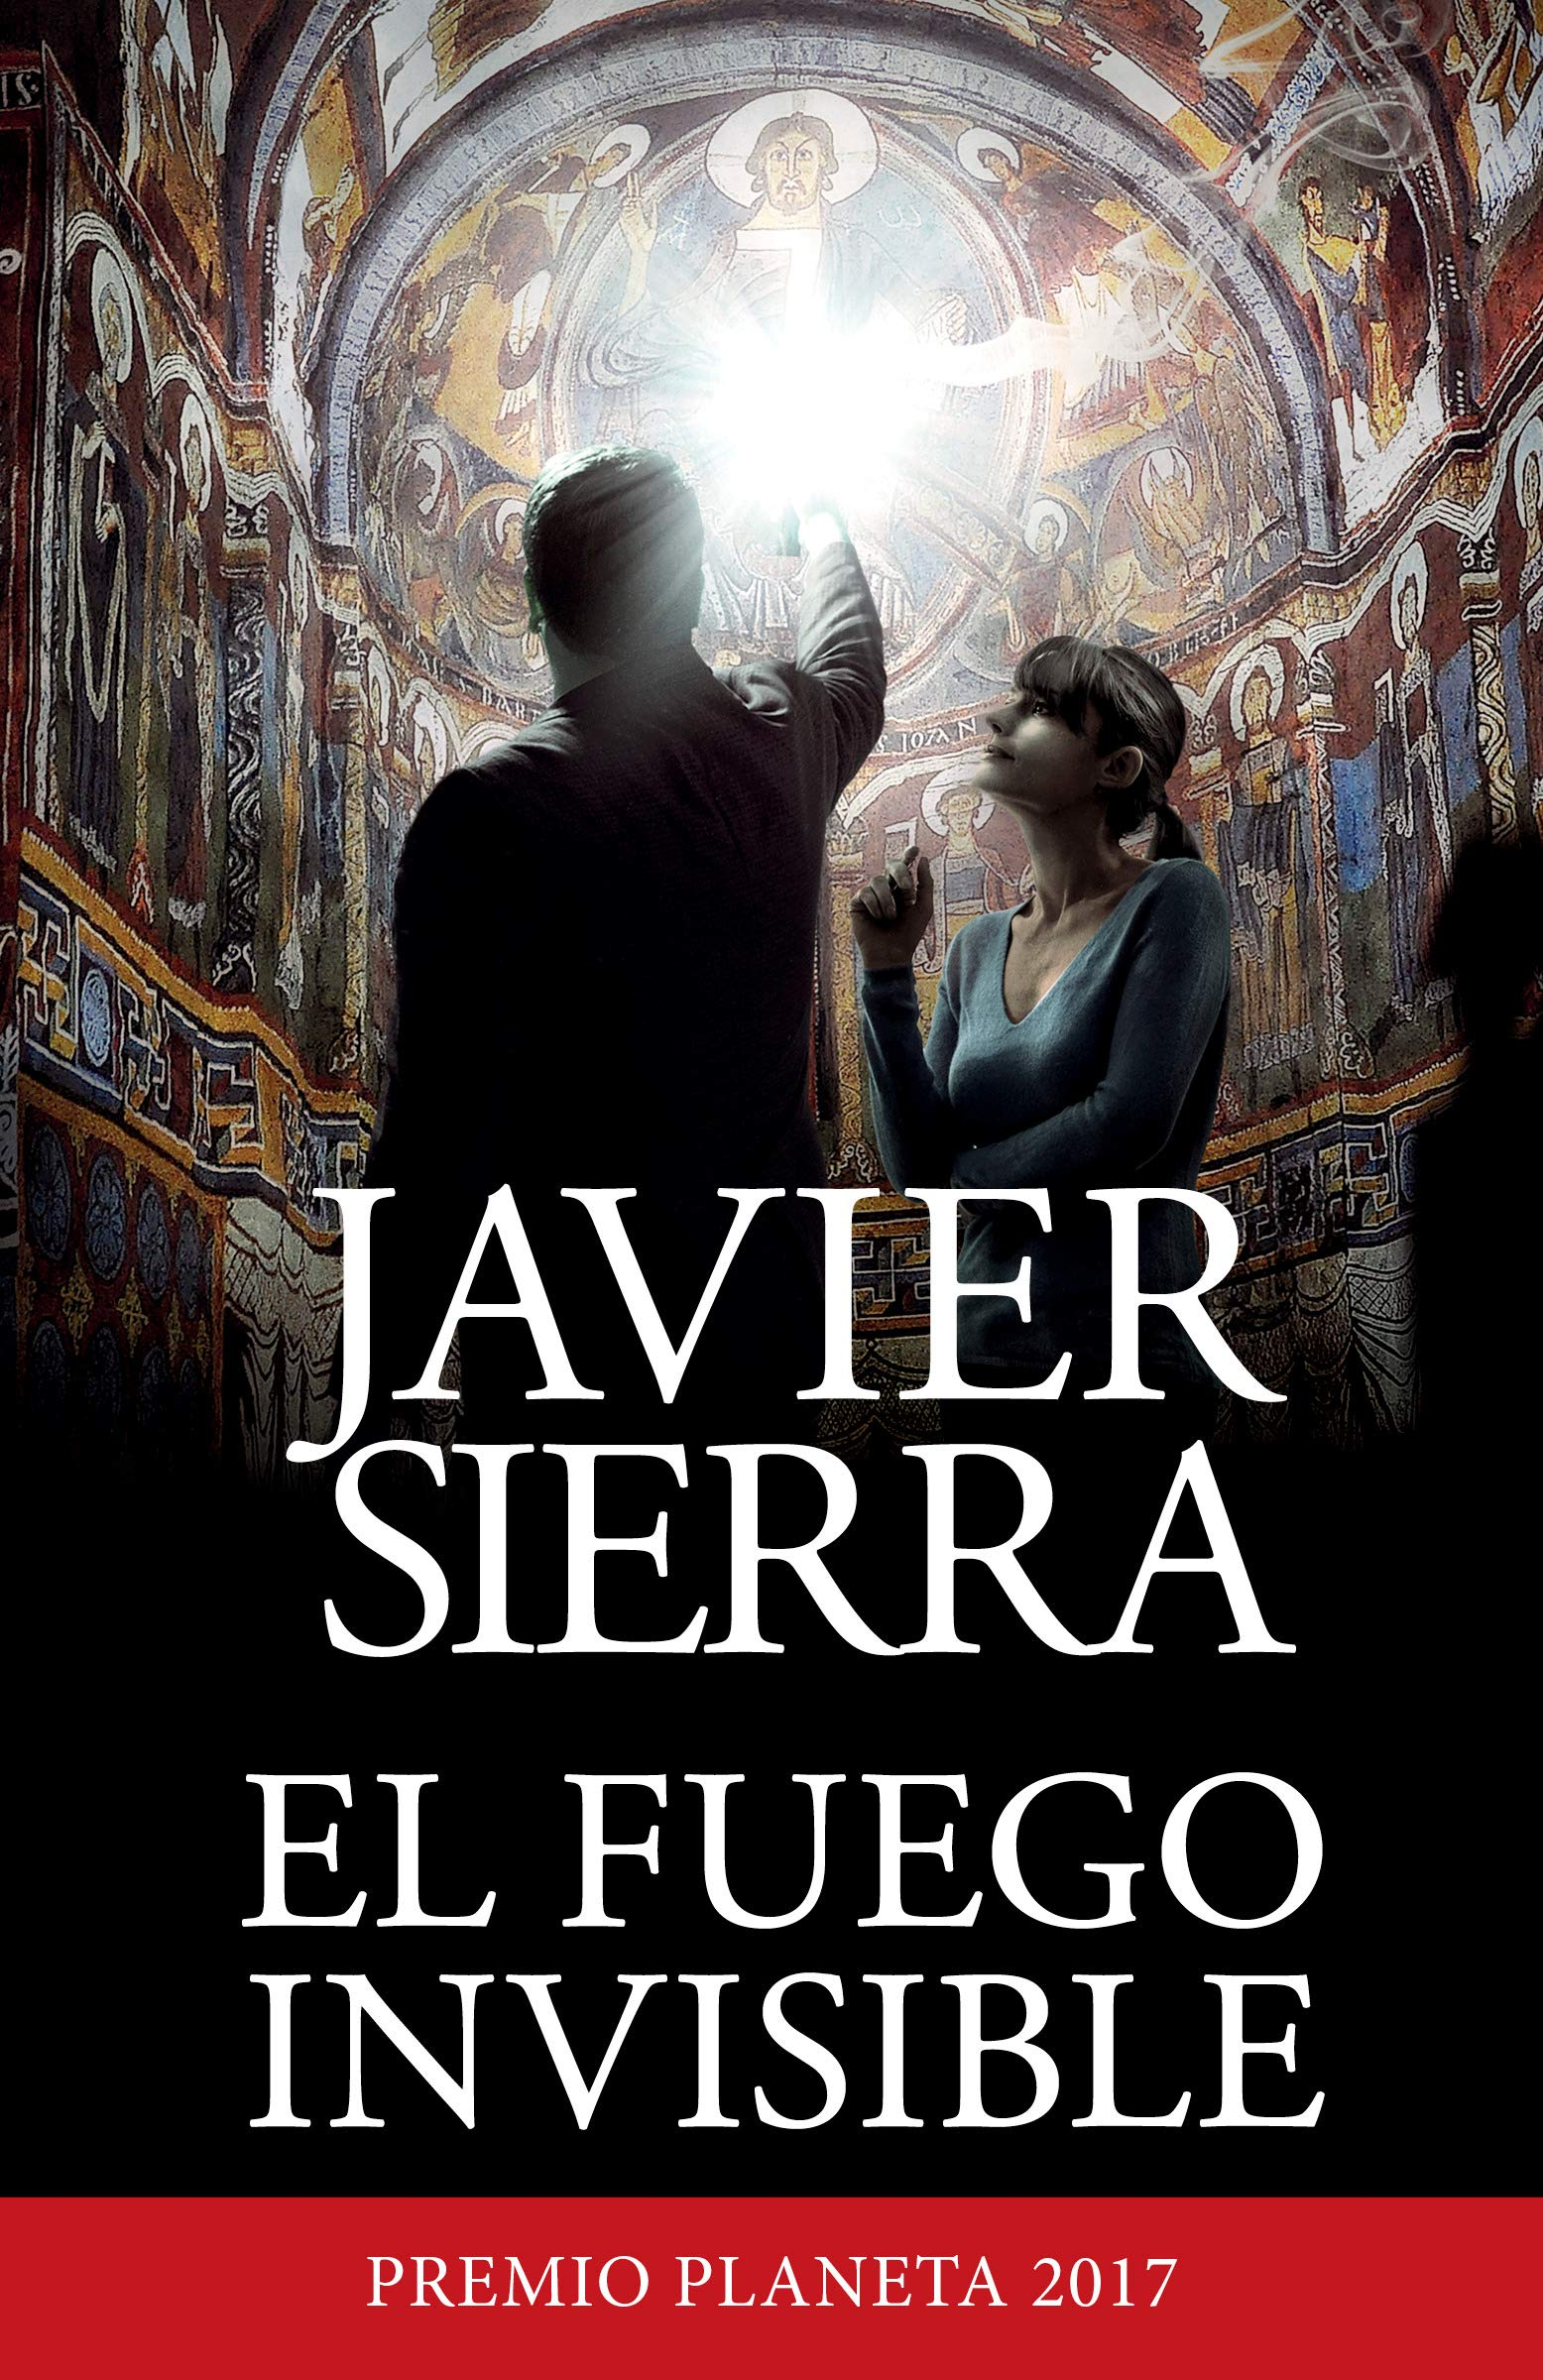 El Fuego Invisible: Amazon.es: Libros